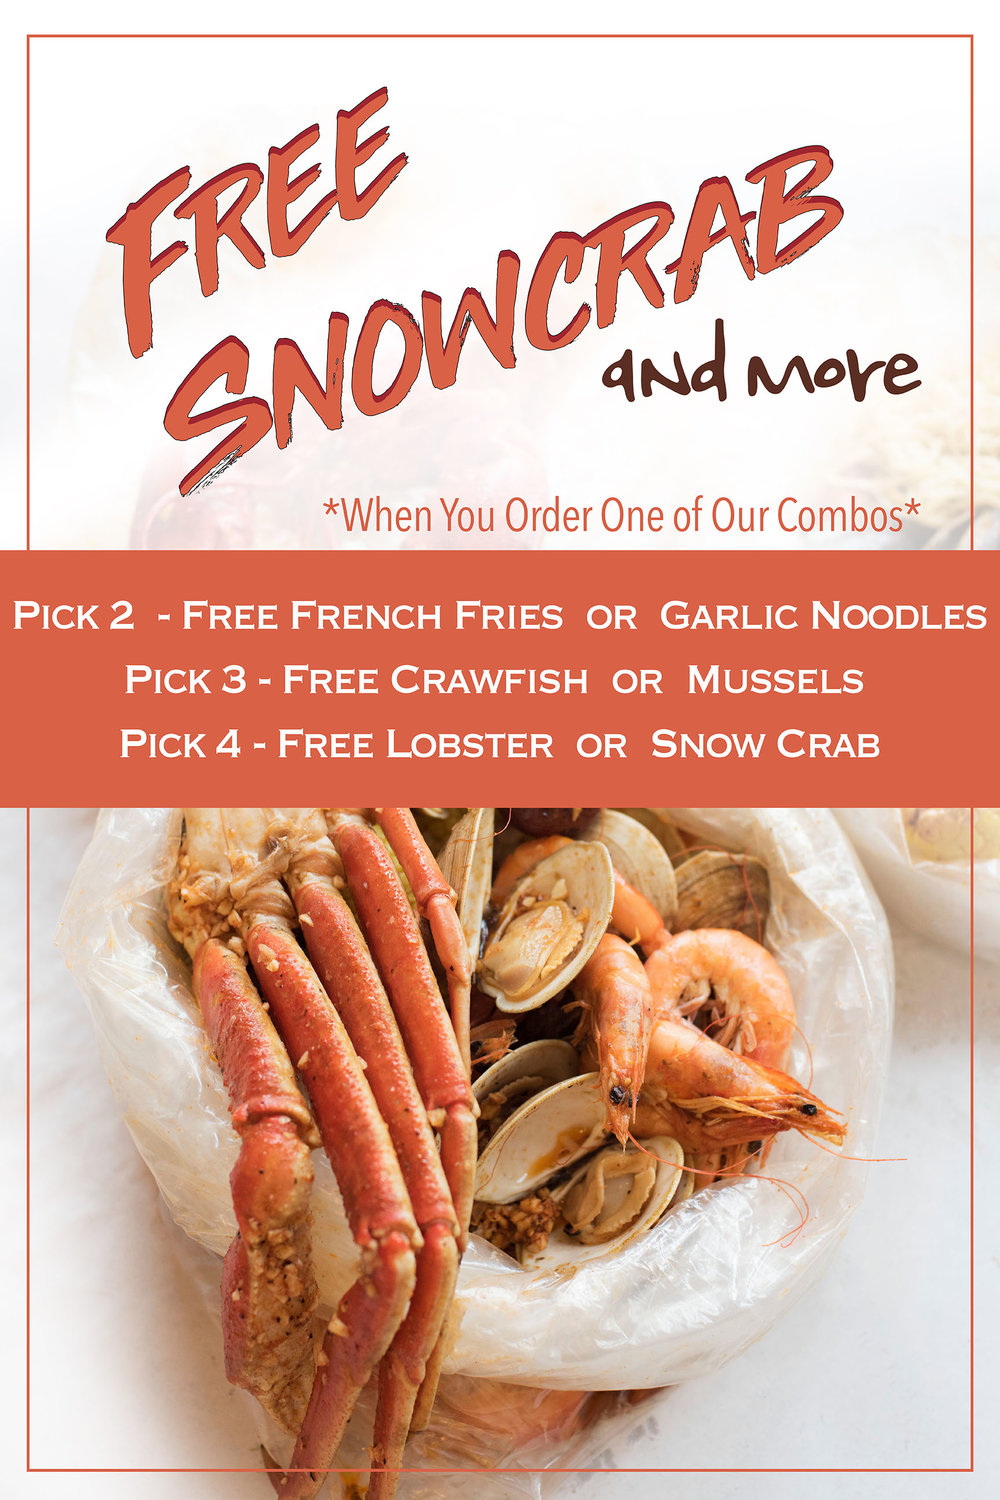 Get free snowcrab and more when you order one of our combos! (Ongoing) -